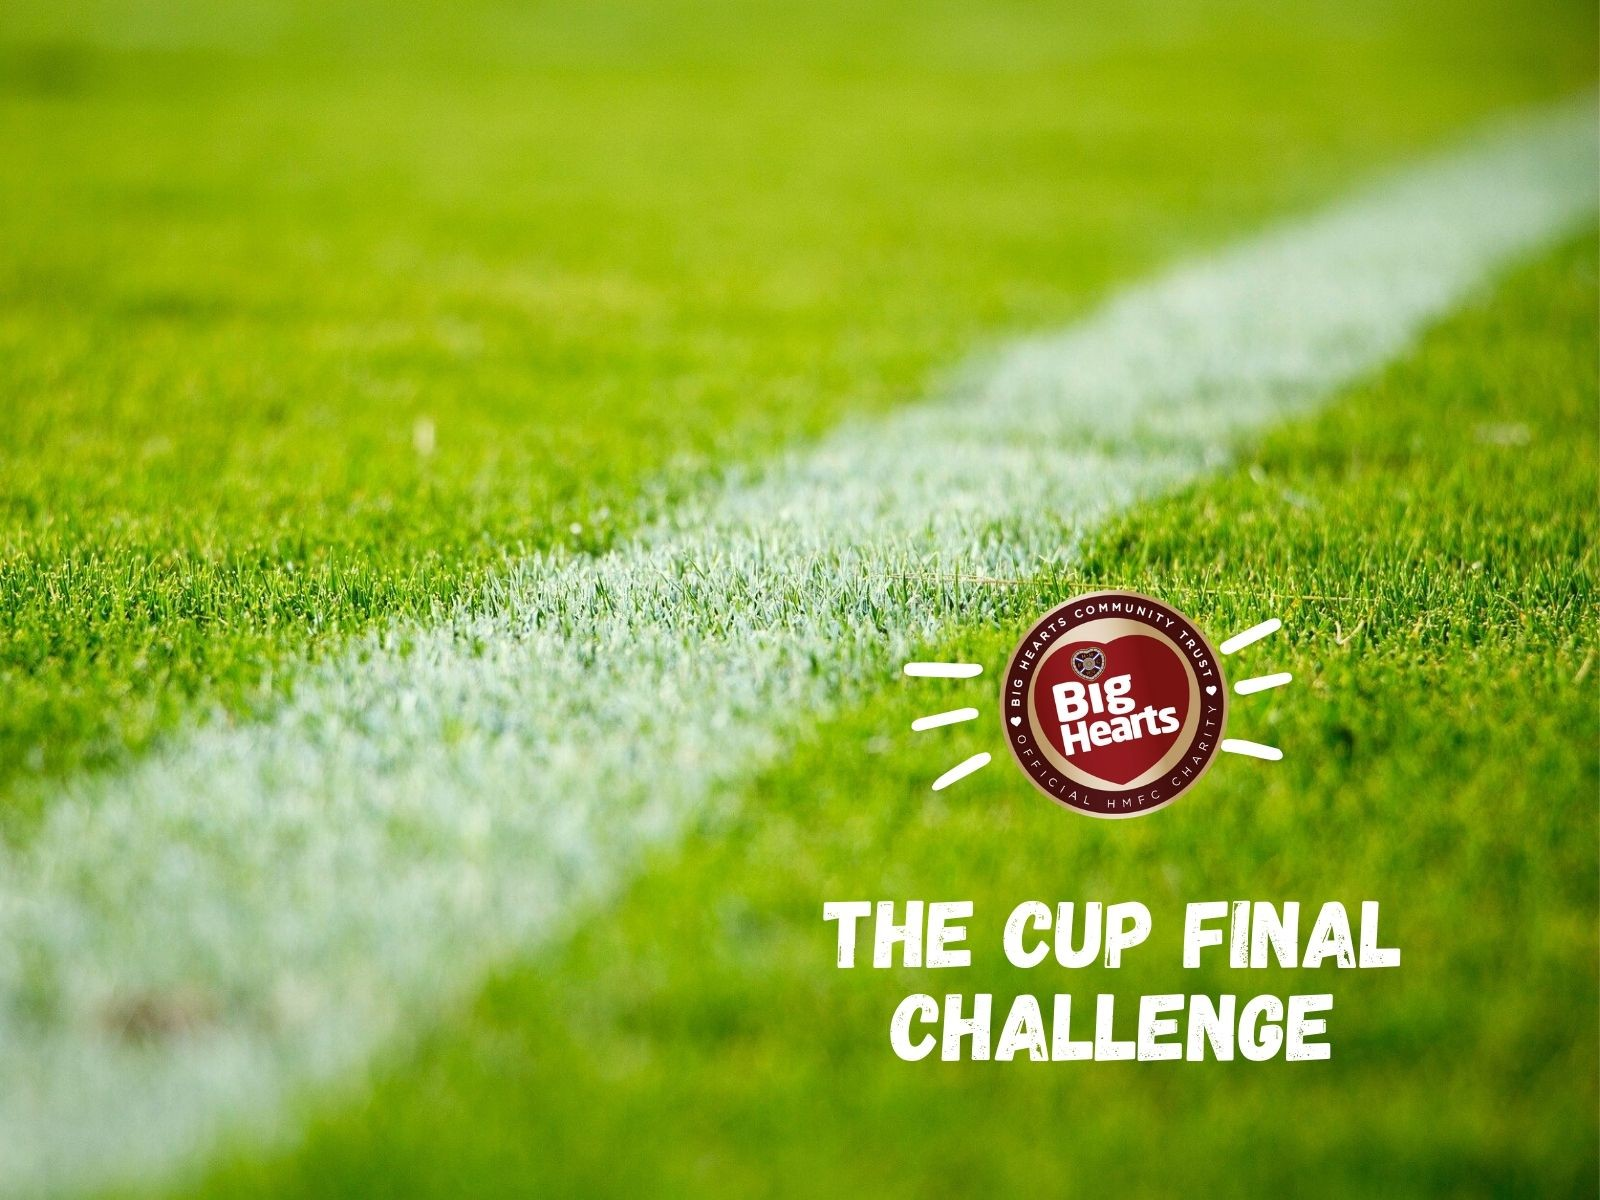 » THE CUP FINAL CHALLENGE – COMPLETE 06, 12 OR 98 KMS IN MAY!